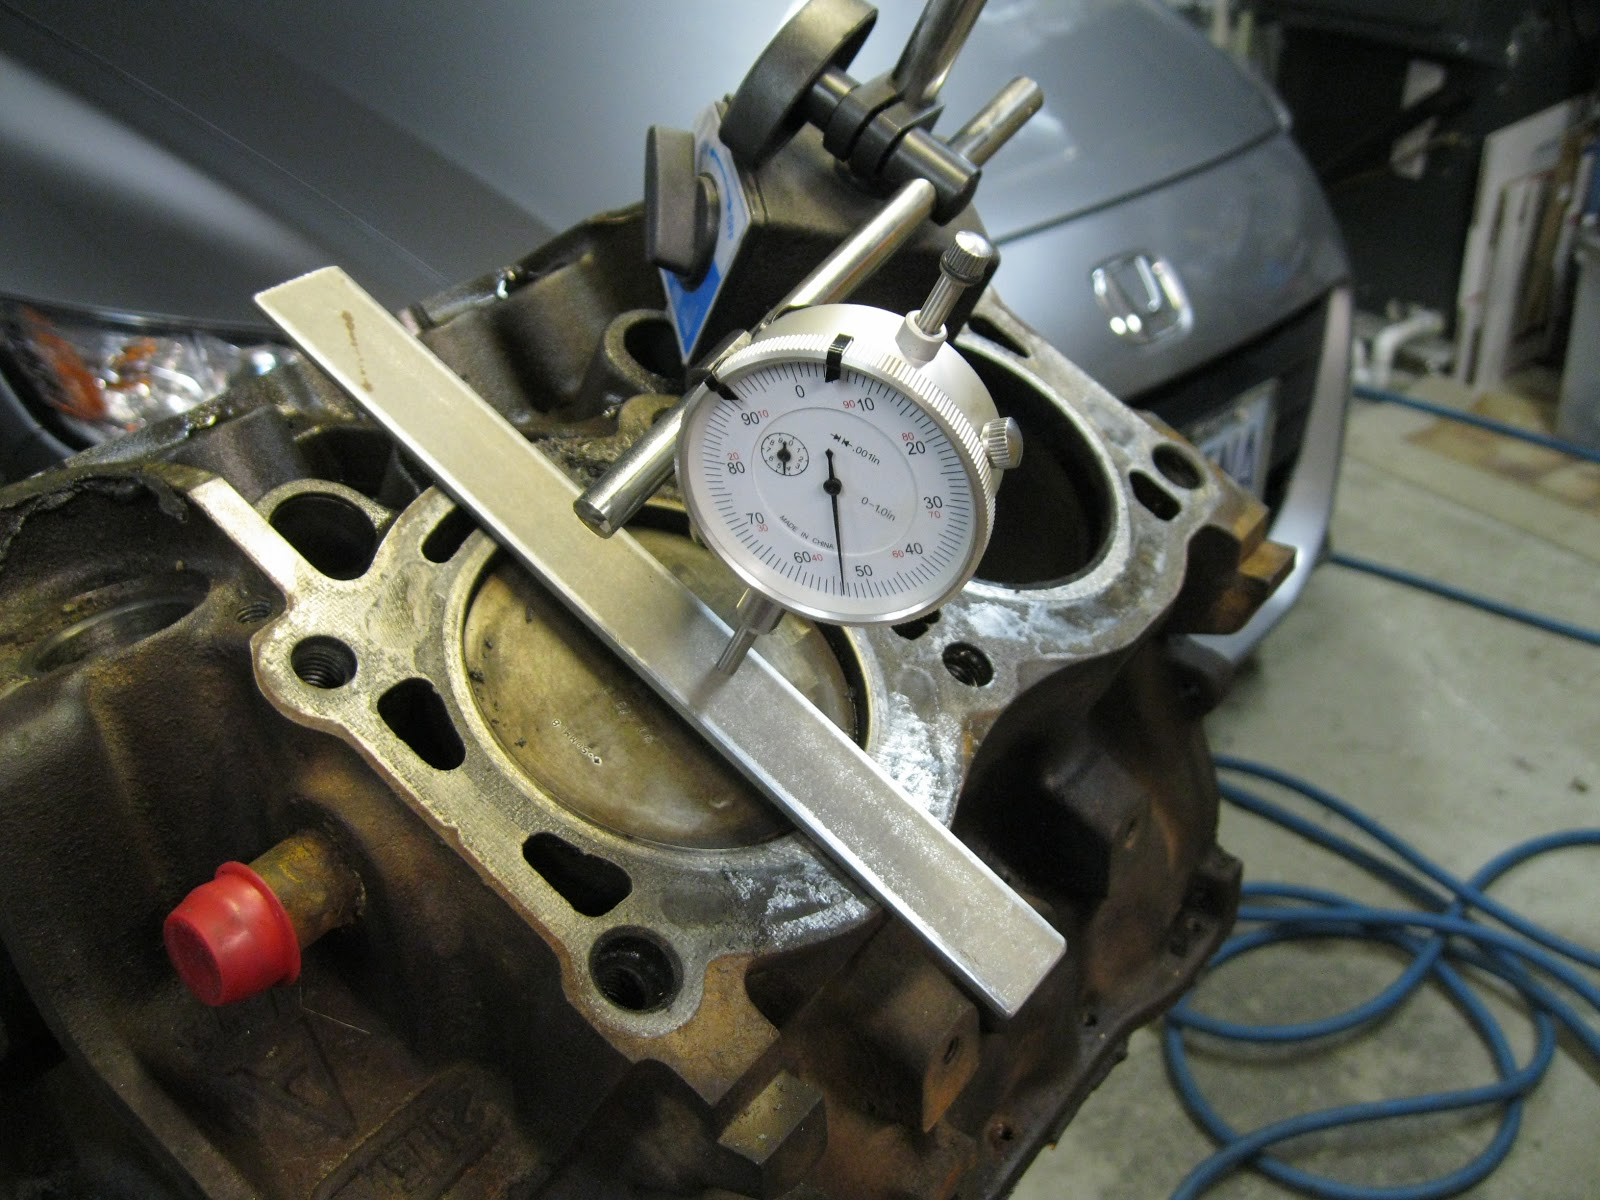 ... Engine Exploded Diagram as well Chevy V4 Engine. on v4 ford engine